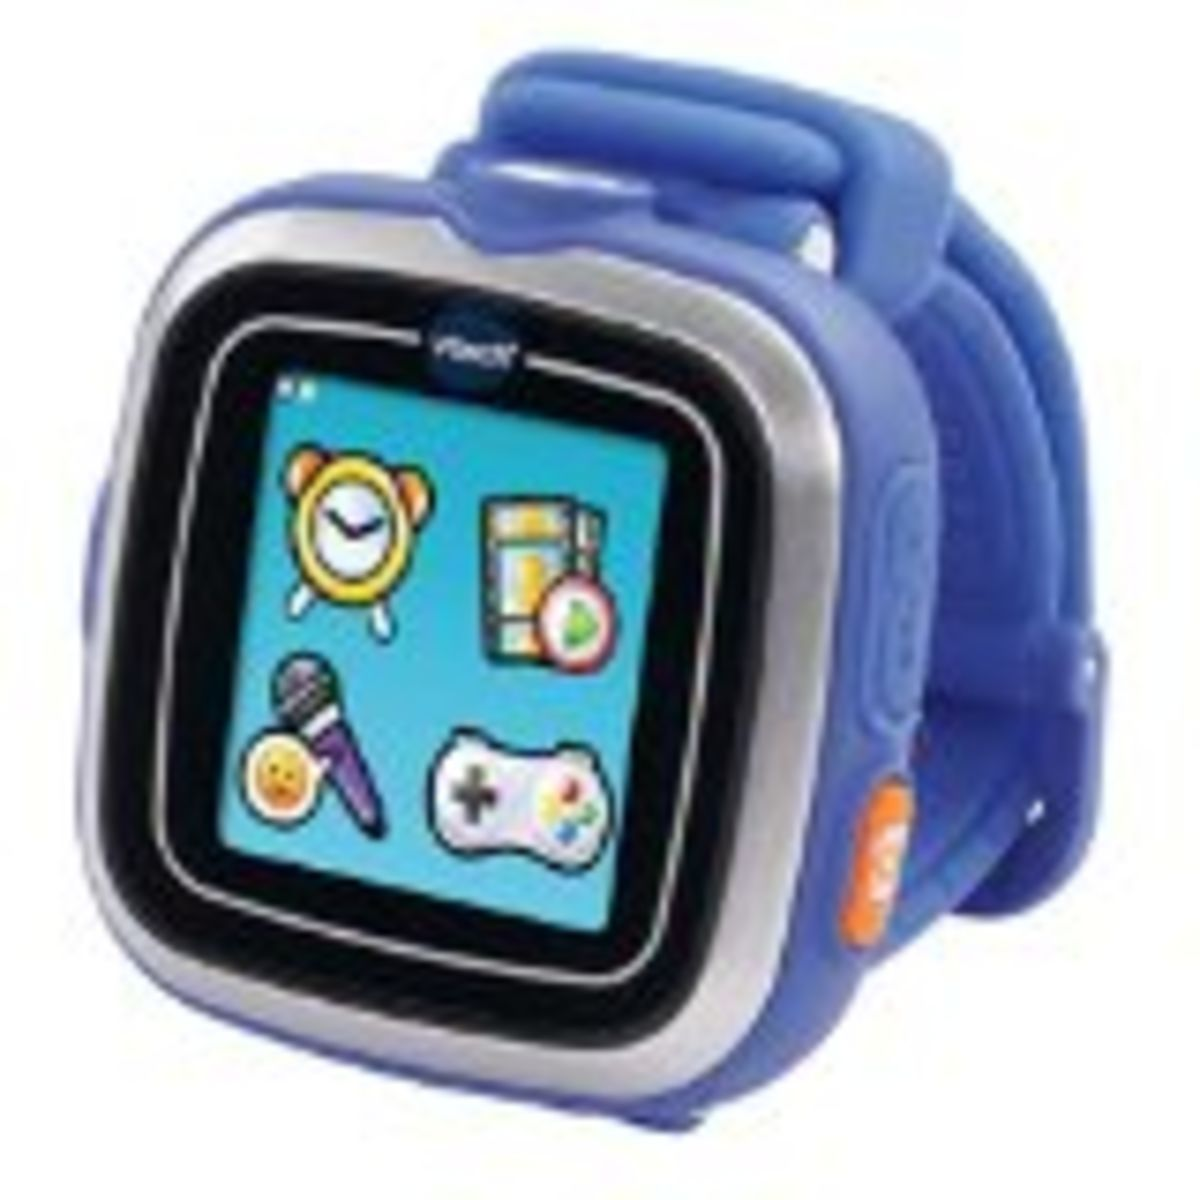 Headline for Best VTech Kids Smart Watch Reviews 2014